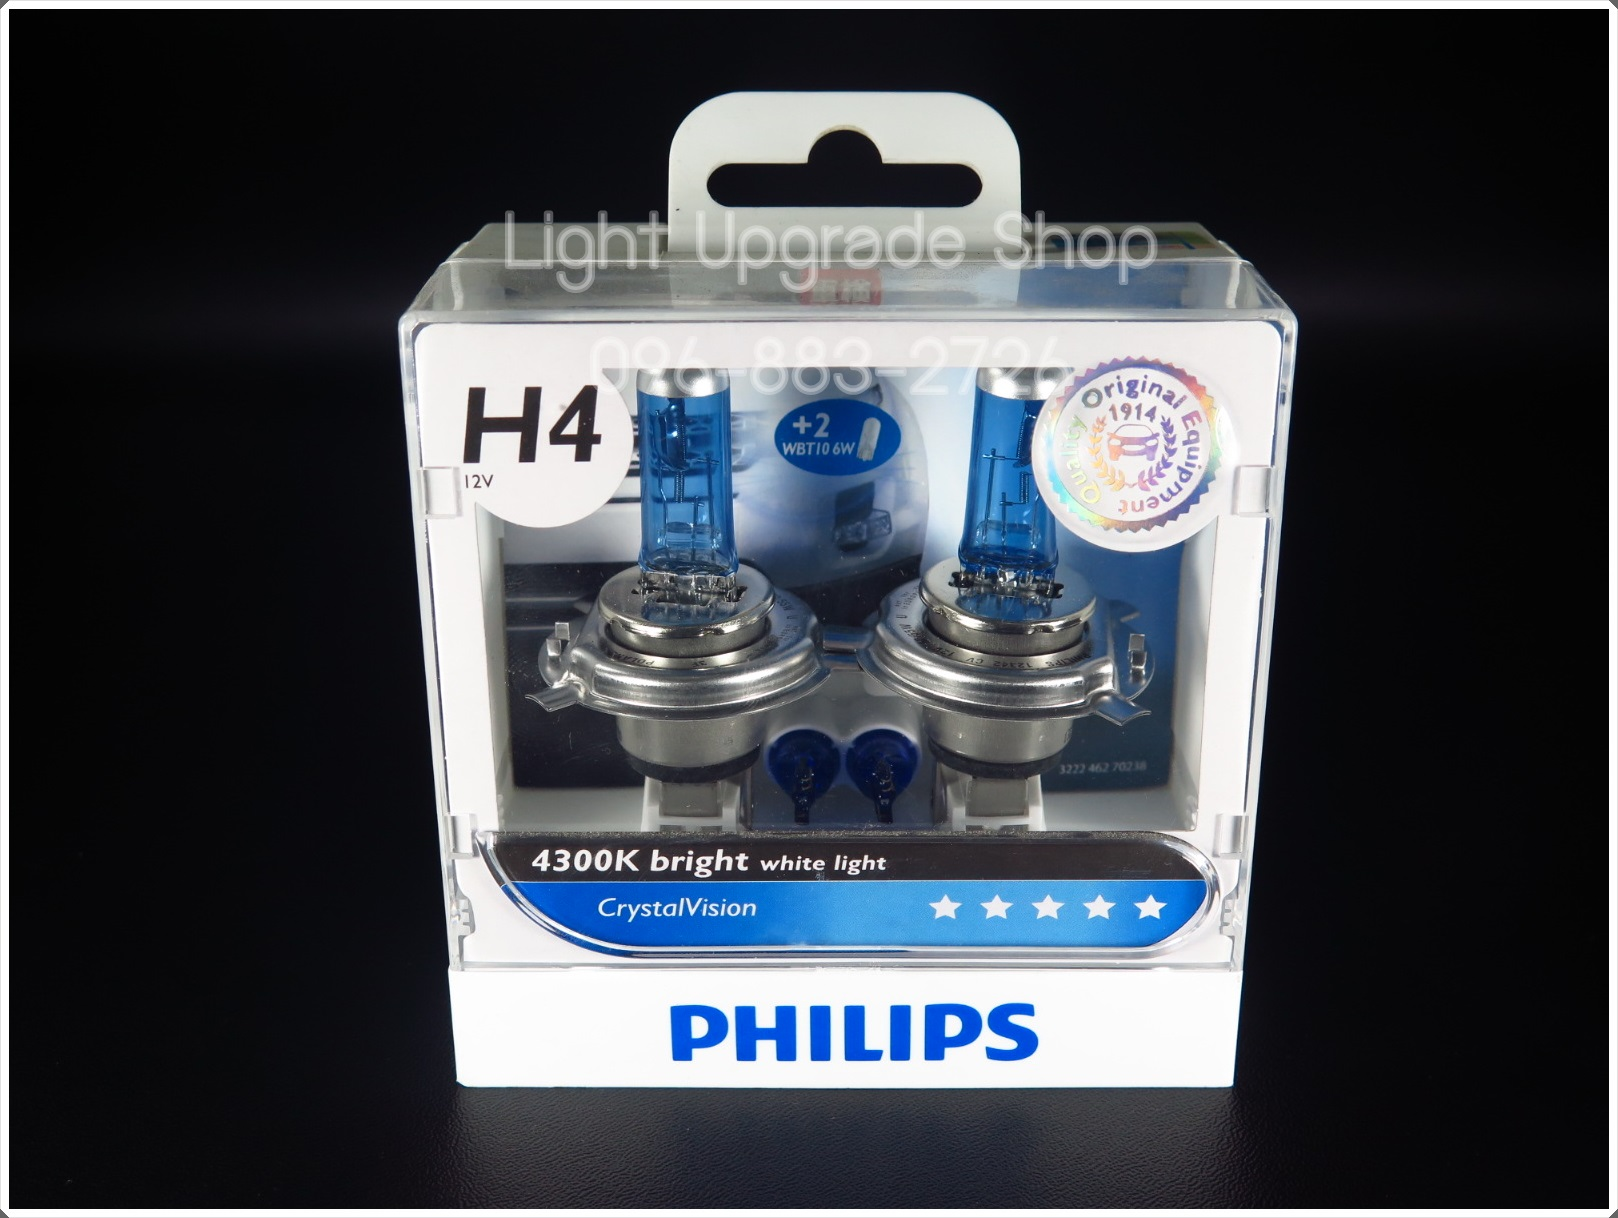 Philips Crystal Vision 4300K [H4]